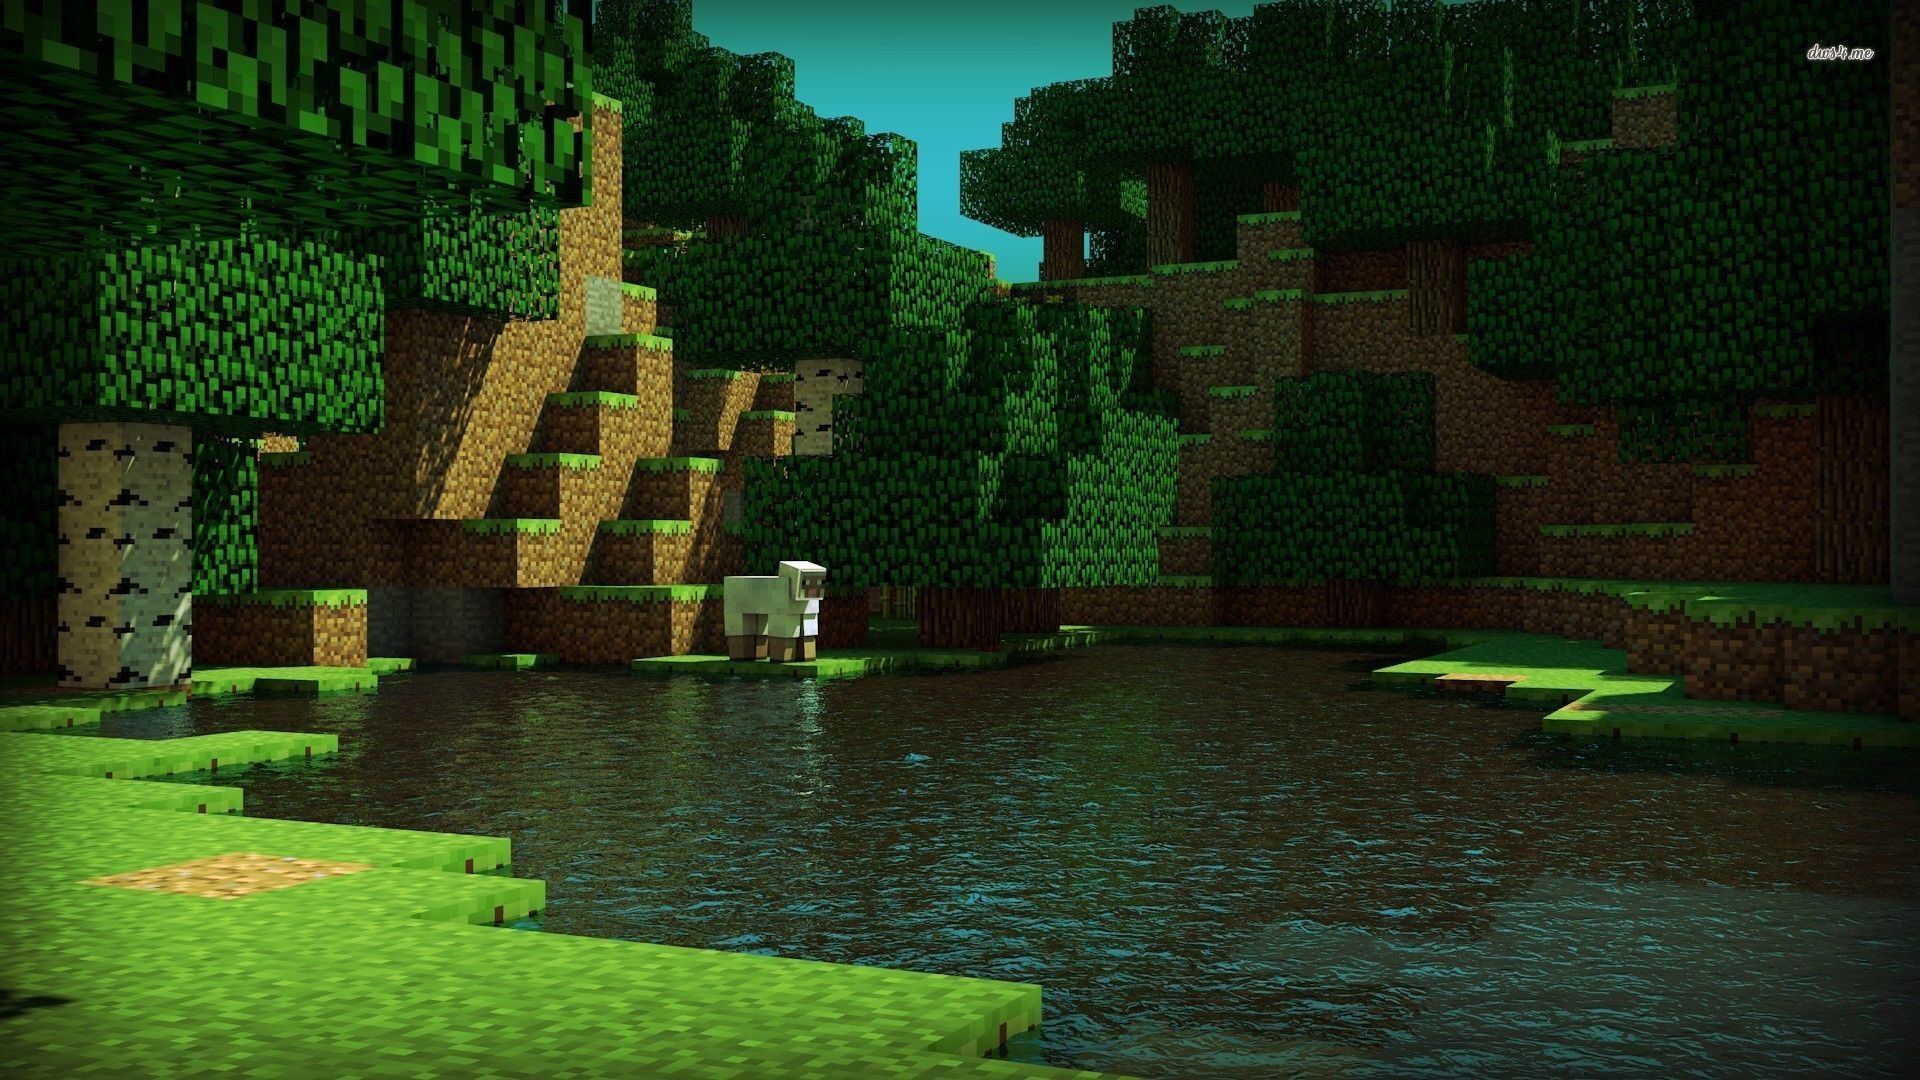 Minecraft Wallpapers Hd X Group Minecraft Wallpaper Minecraft Shaders Desktop Pictures